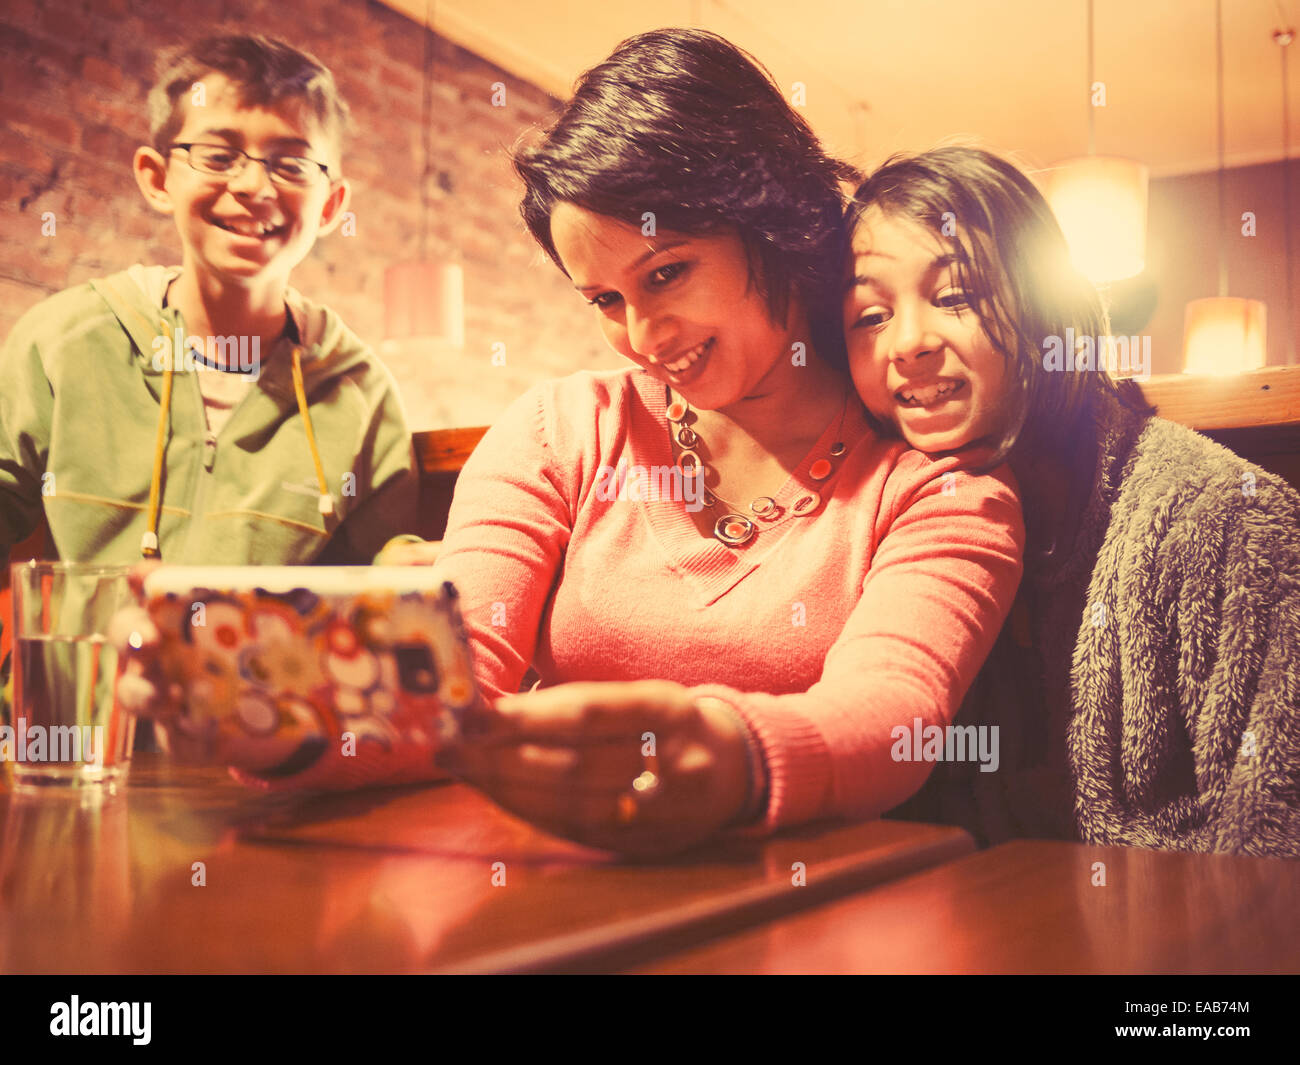 Woman takes picture of self and daughter while son watches - Stock Image